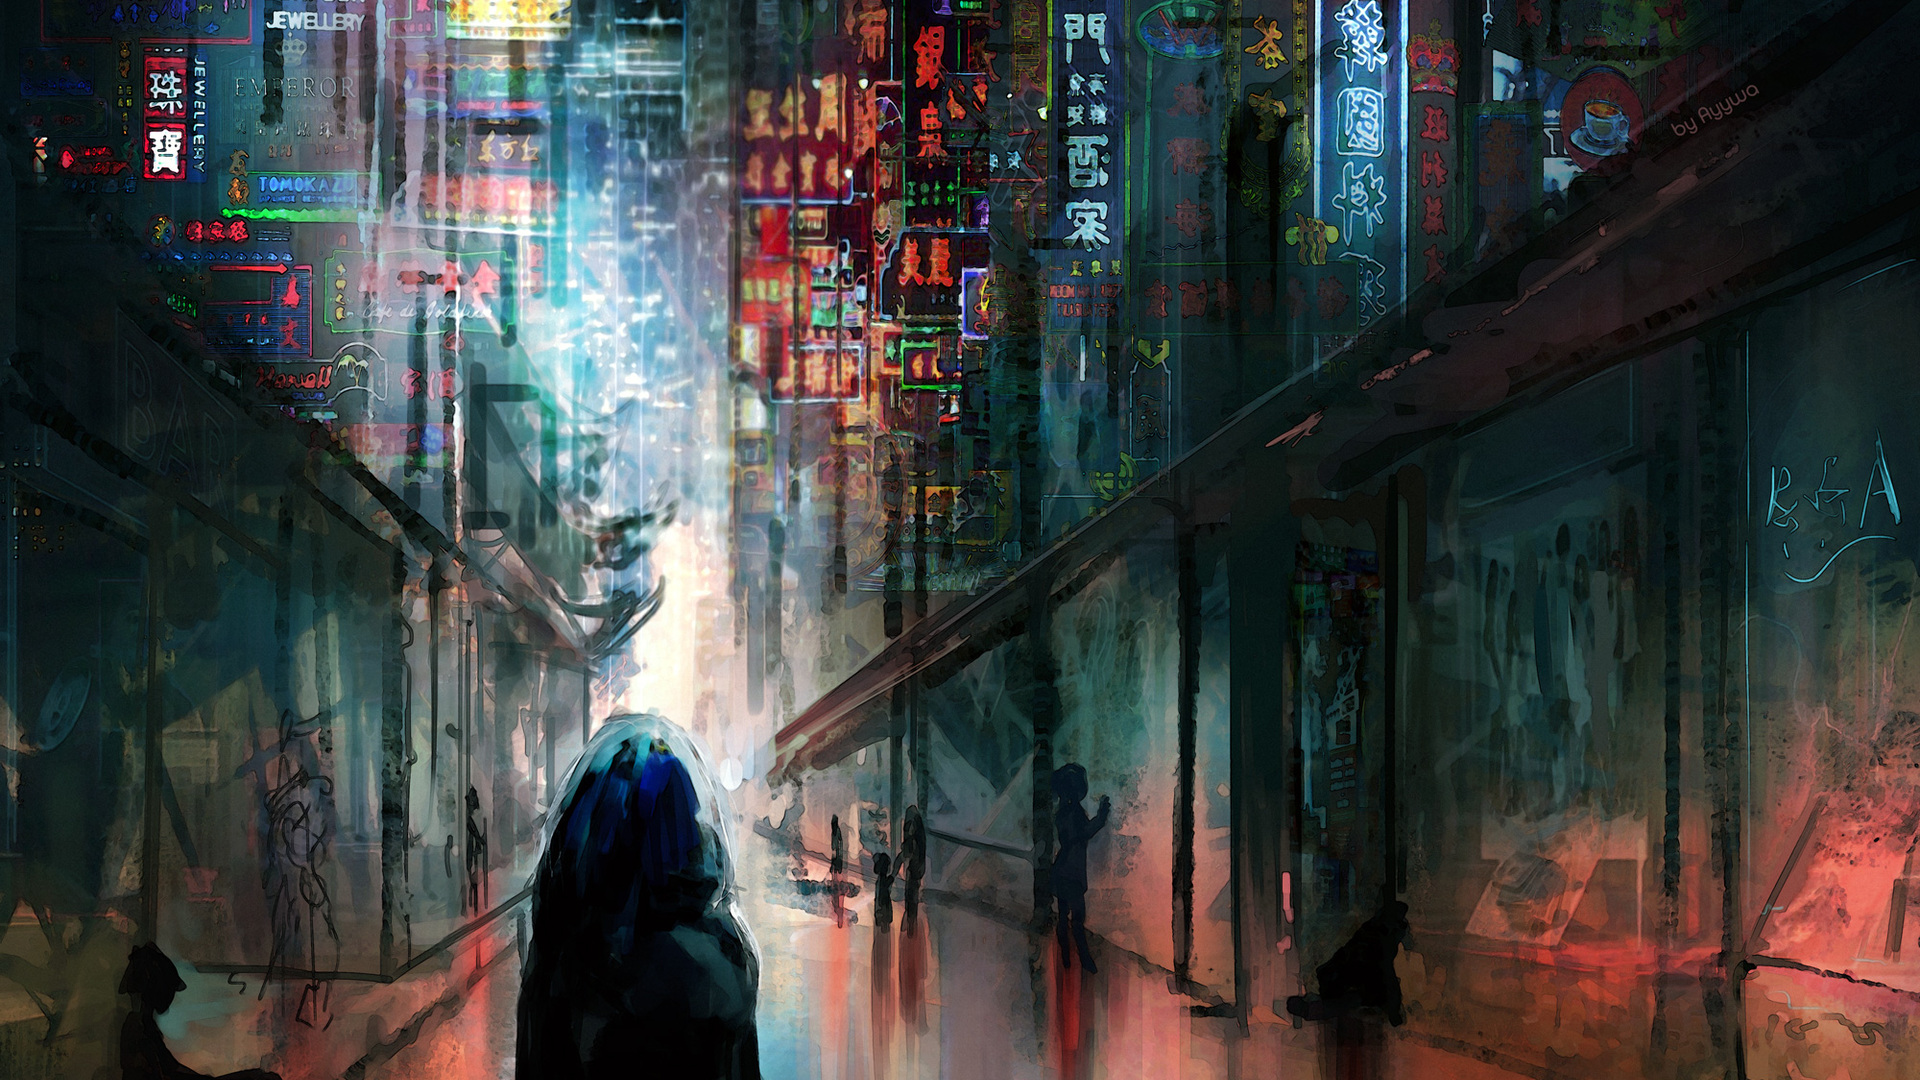 1920x1080 Anime Cyberpunk Scifi City Lights Night Buildings